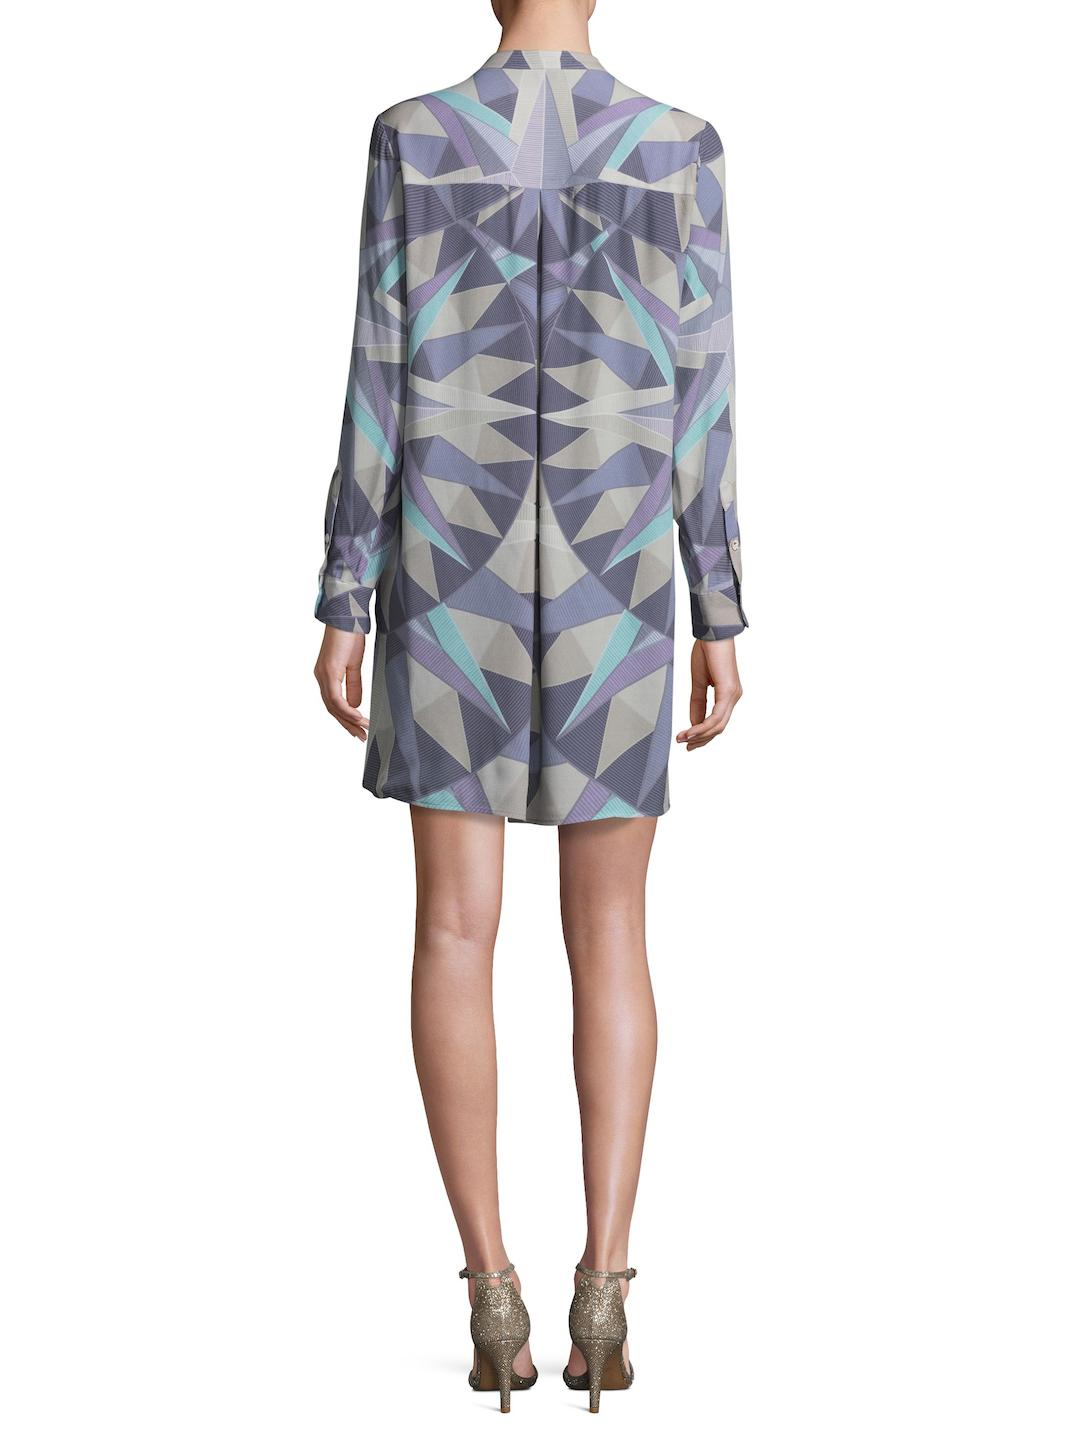 Mara Hoffman Synthetic Compass Printed Tunic Dress in Lavender Grey (Grey)